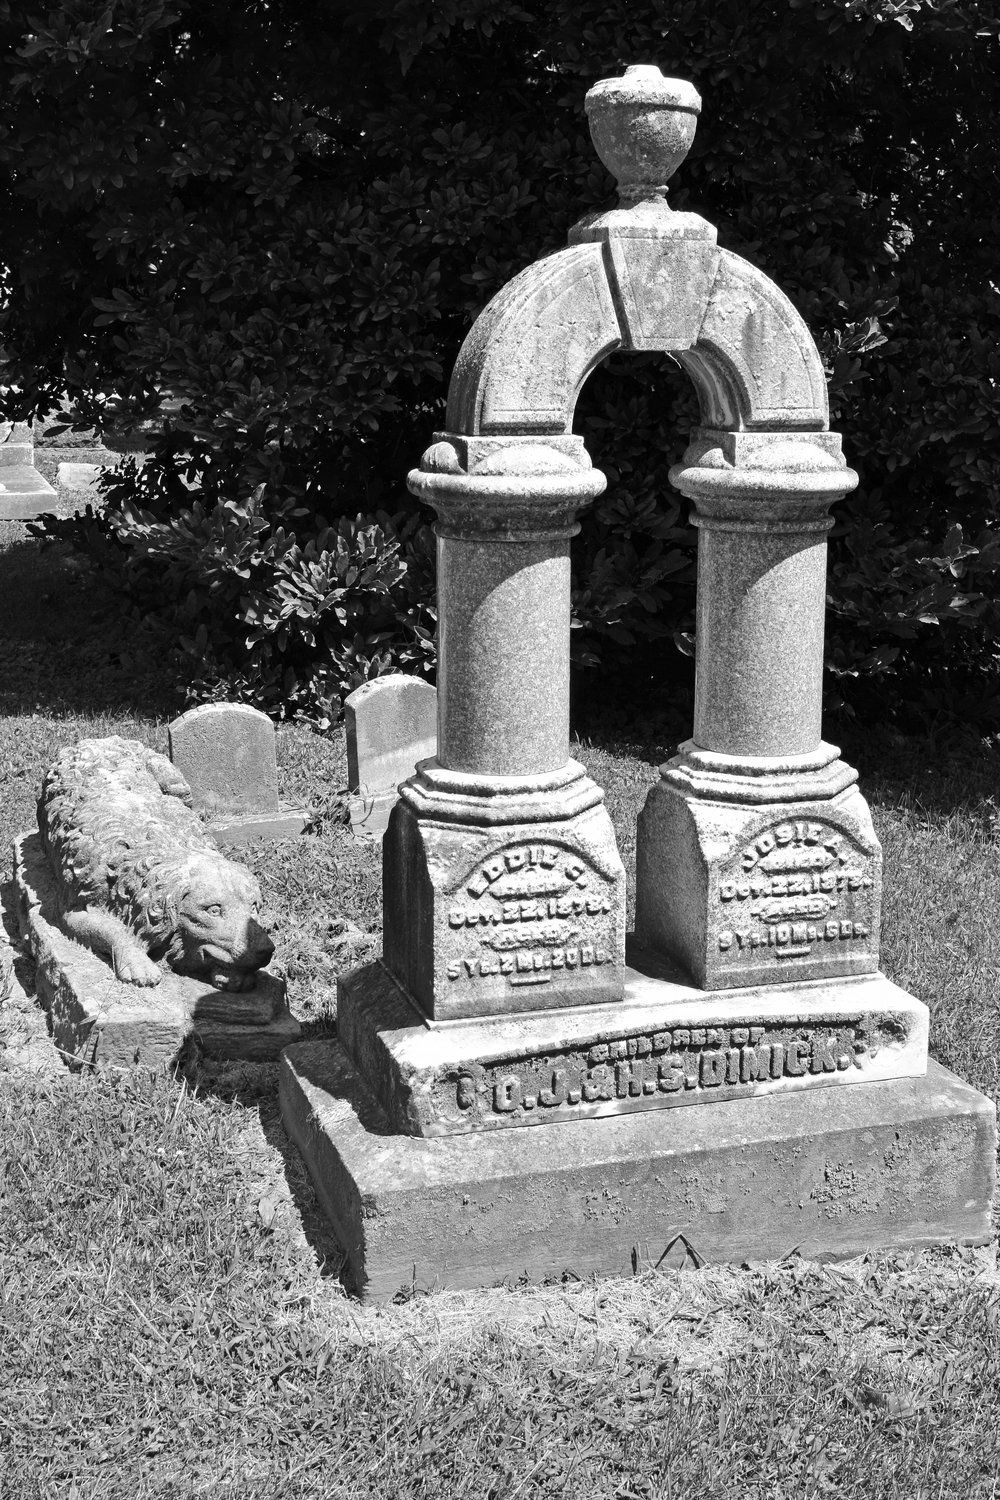 The graves of Josie and Eddie Dimick and their Newfoundland Dog.